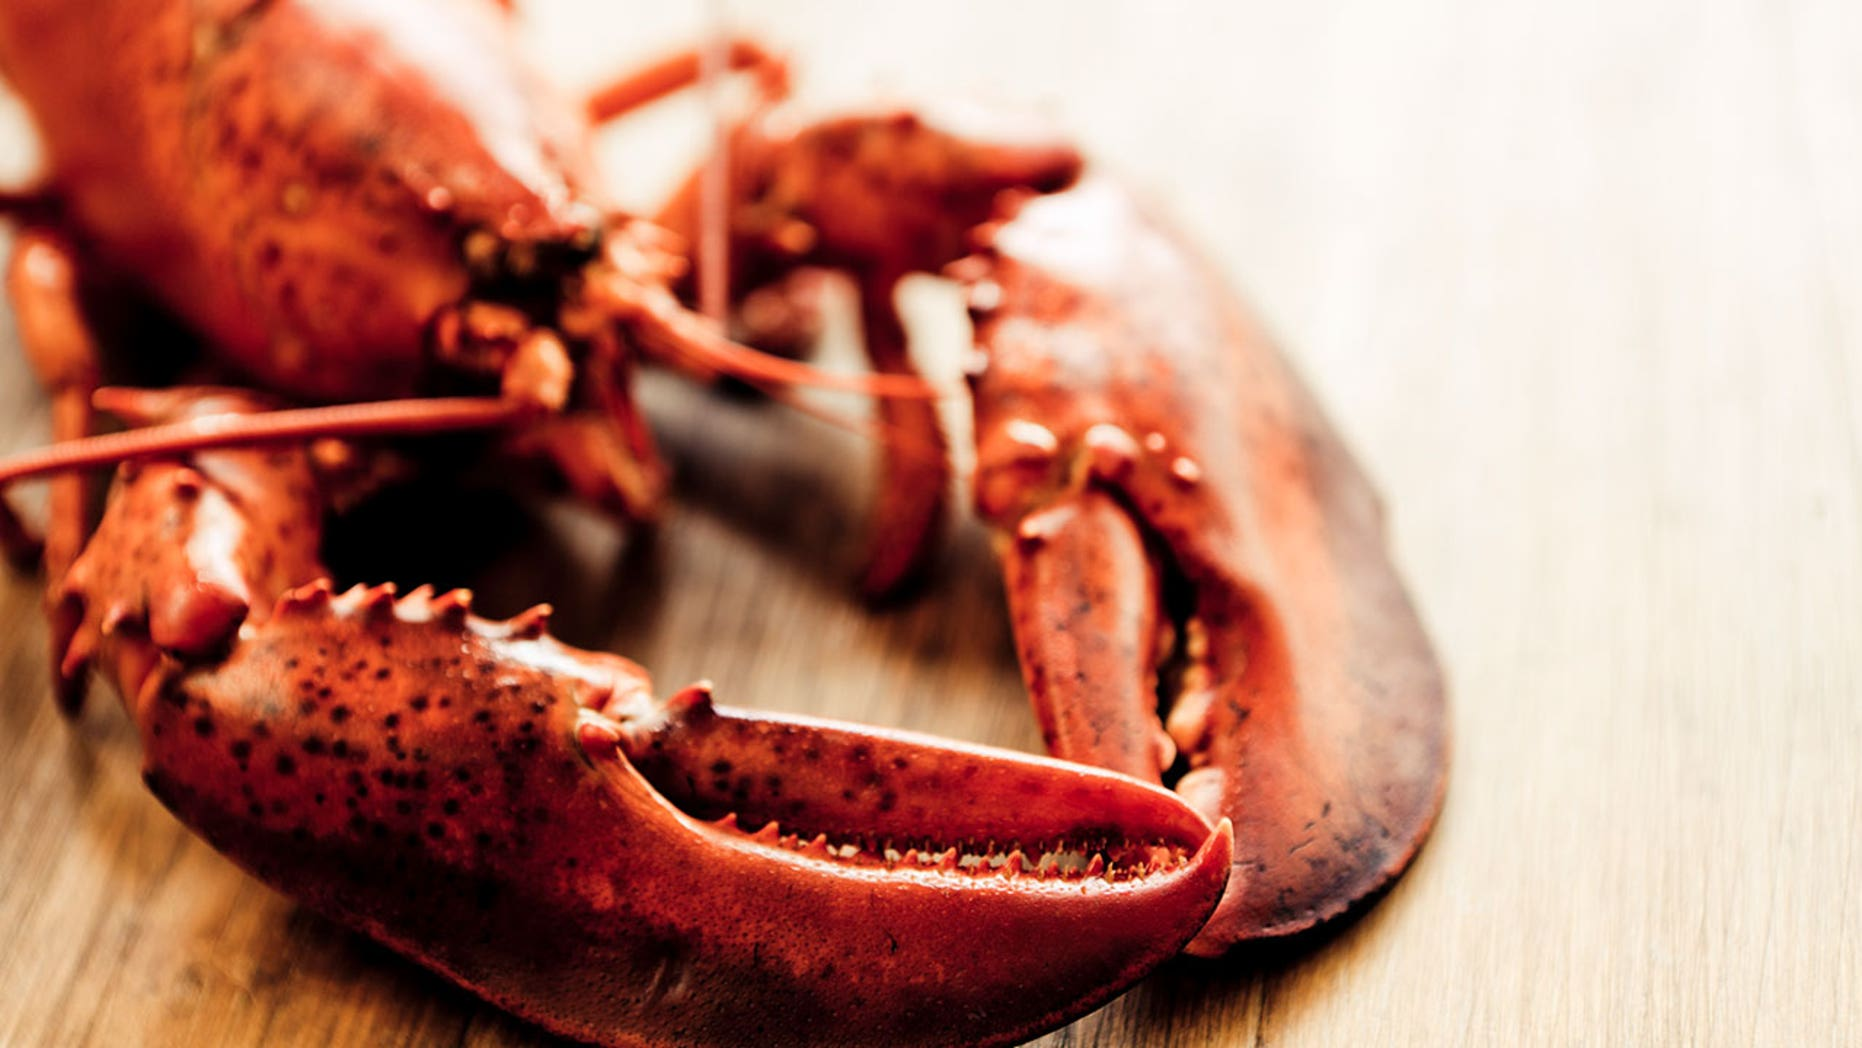 An extremely old Long Island lobster was recently saved from becoming dinner.